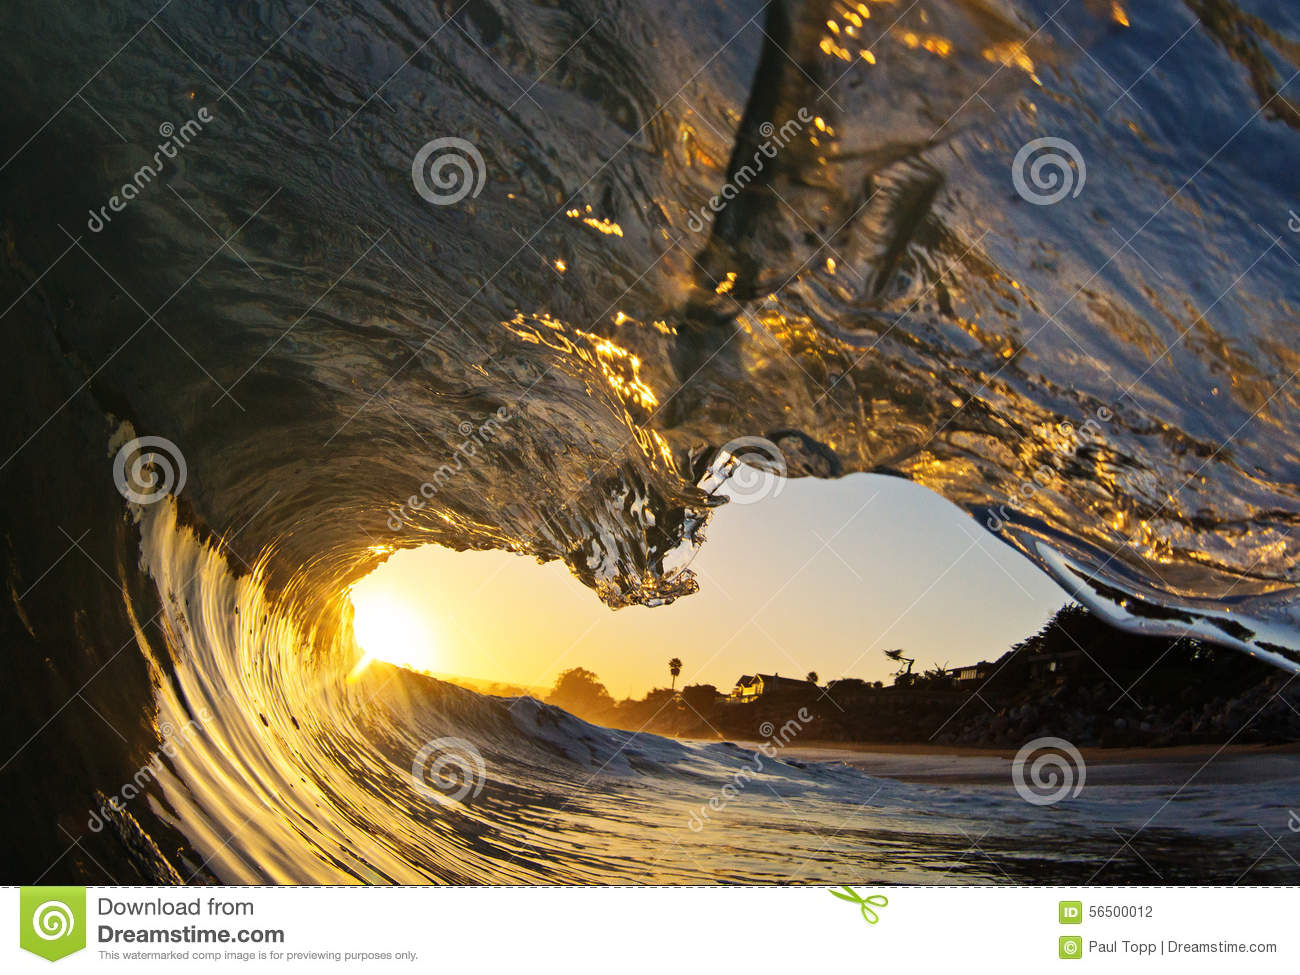 Ocean Wave Tube at Sunset on the Beach in California